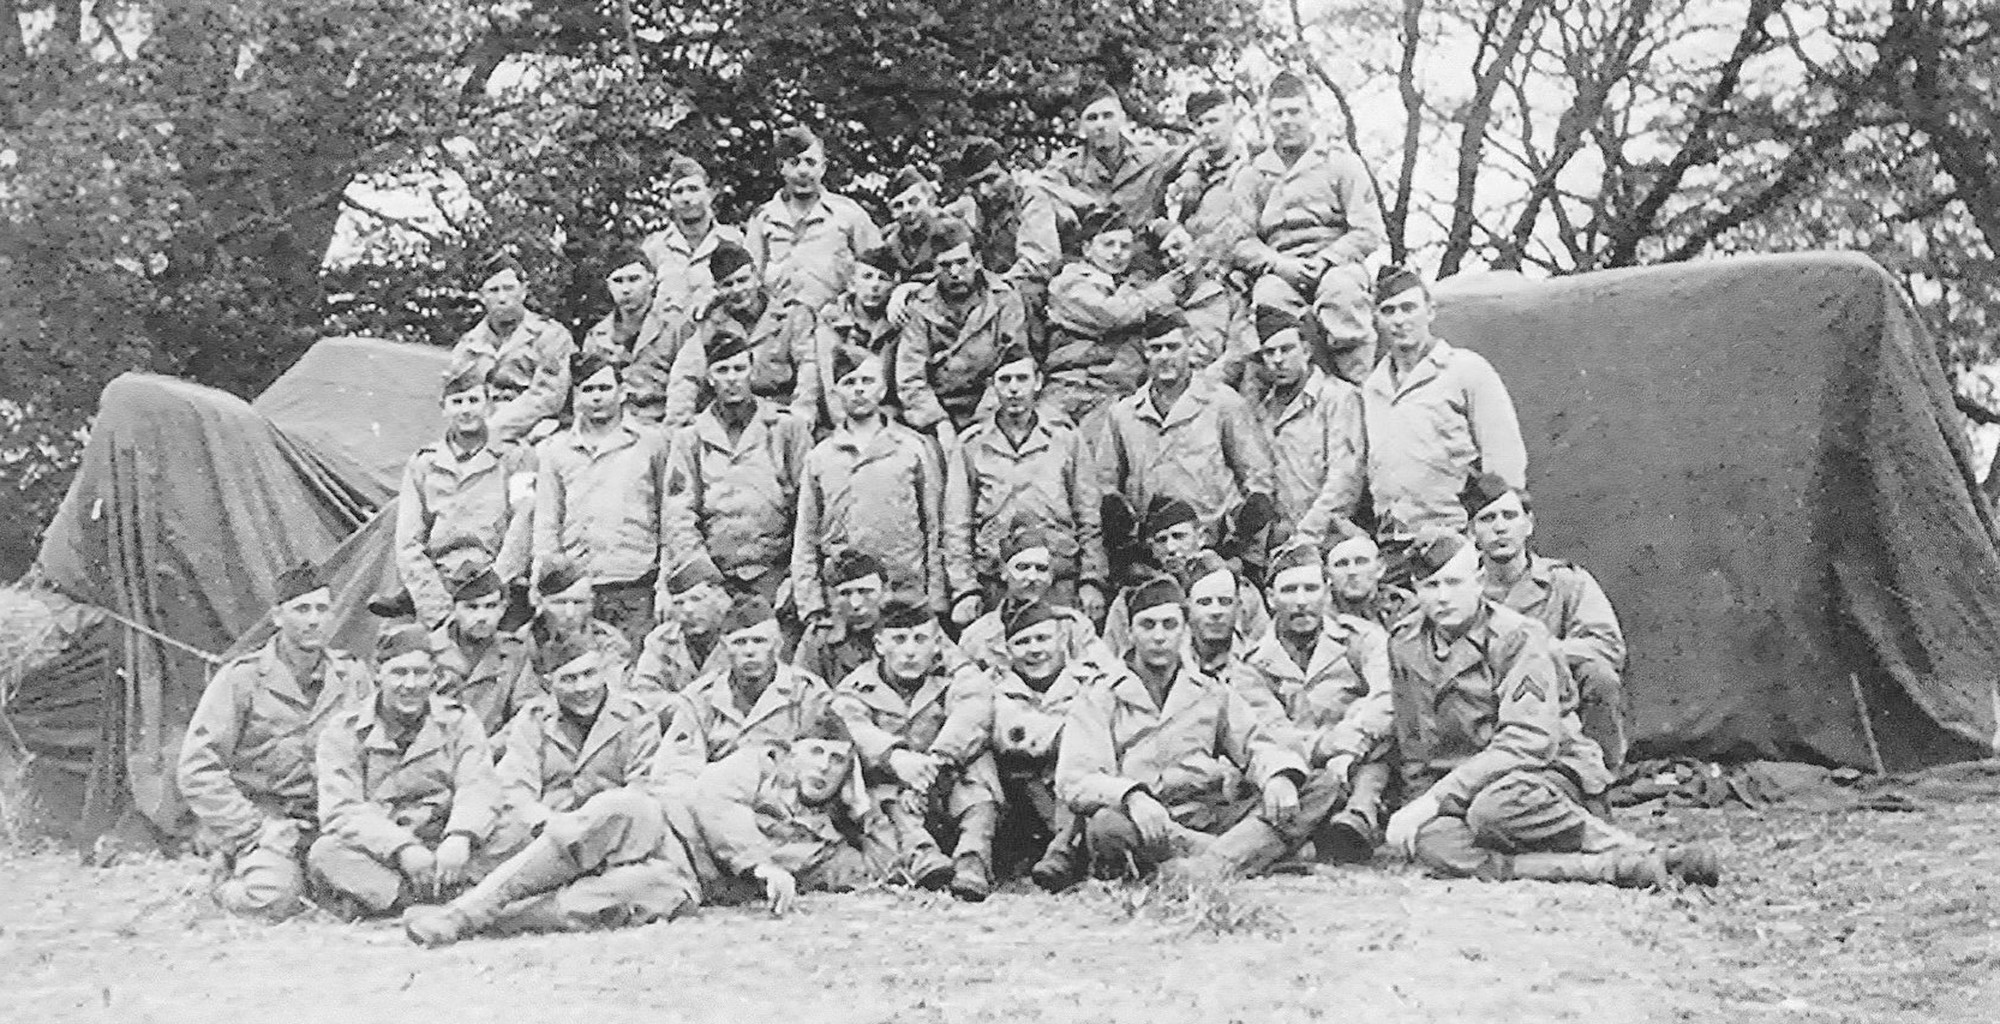 Sim Wright's platoon is seen during World War II.